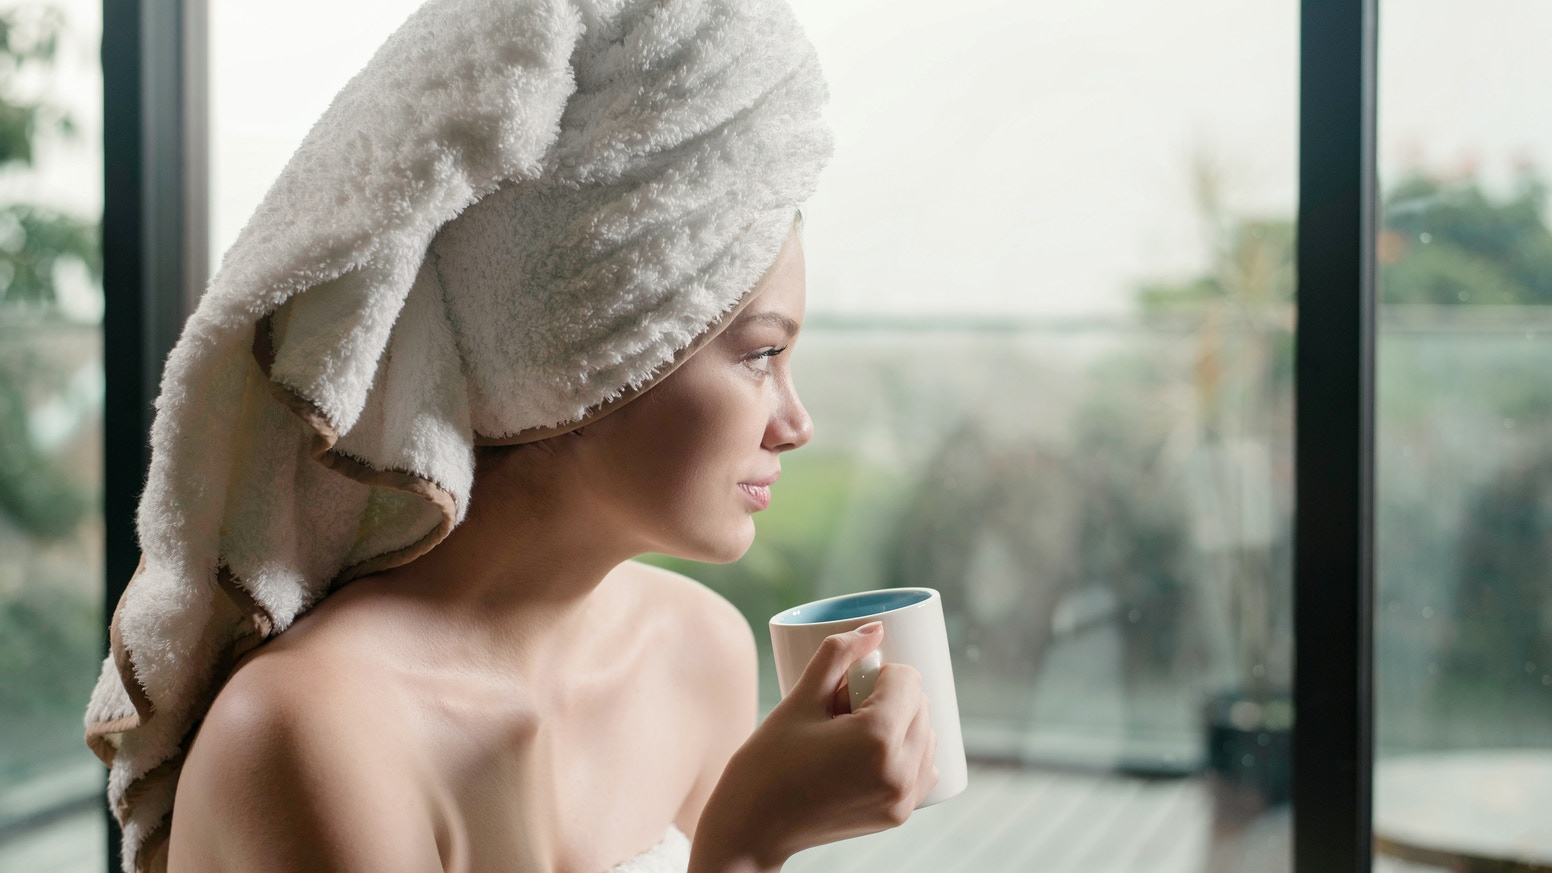 Natural. Organic. Biodegradable. A bath towel perfect for your skin and the environment.